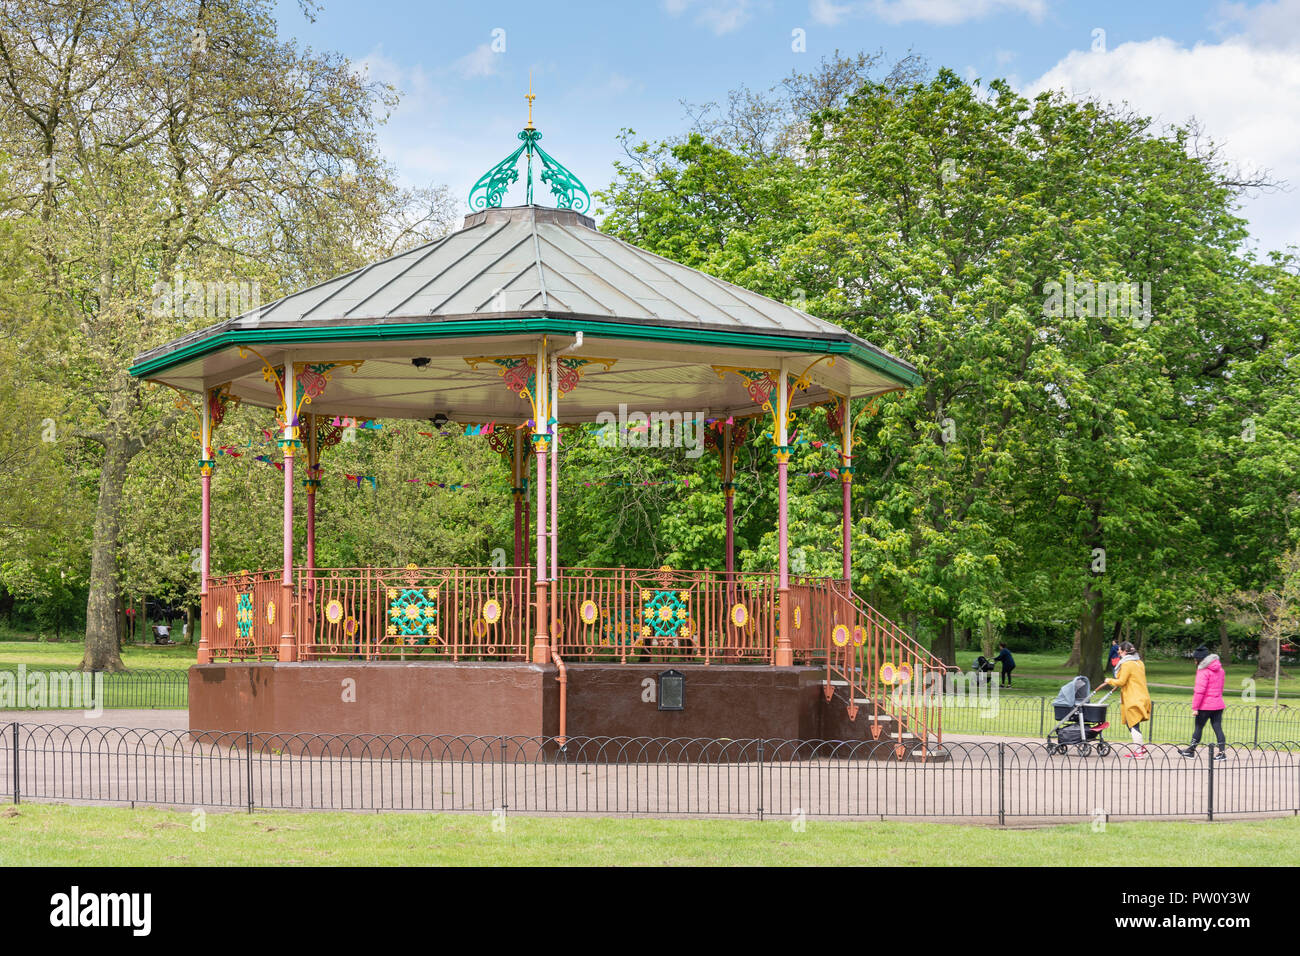 The Bandstand, Queen's Park, London Borough of Brent, Greater London, England, United Kingdom - Stock Image